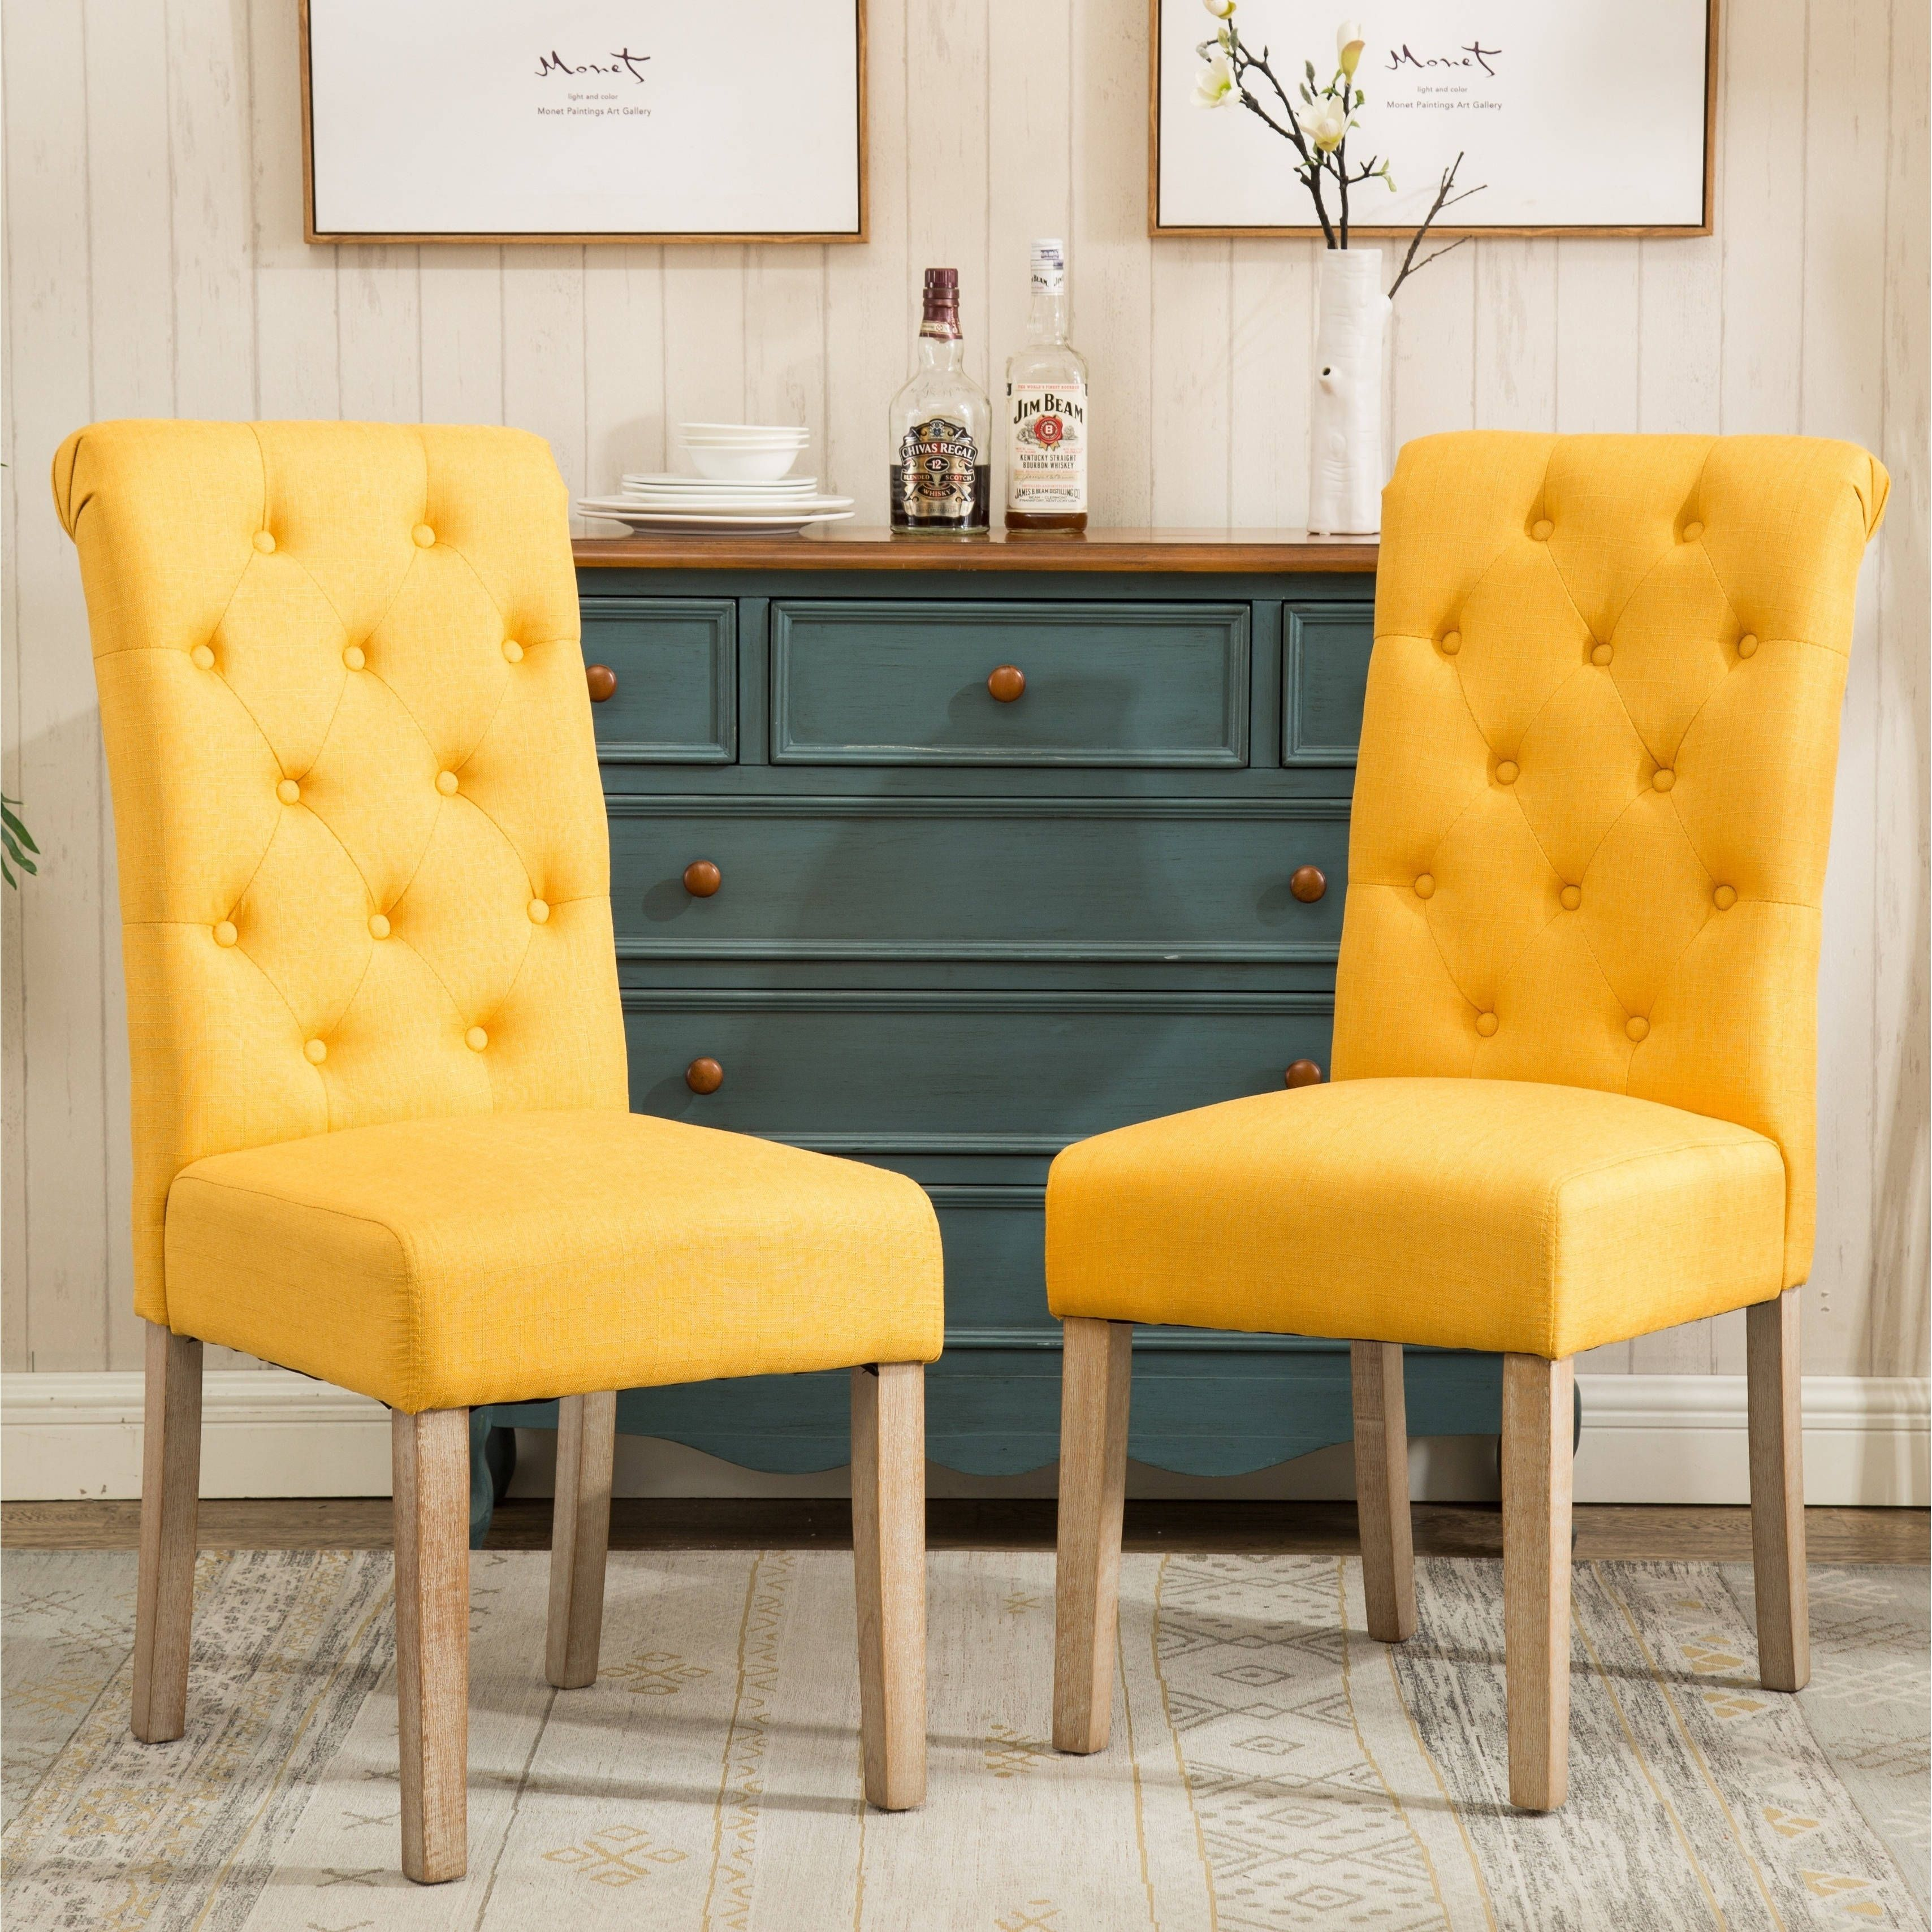 Online Shopping Bedding Furniture Electronics Jewelry Clothing More Yellow Dining Chairs Dining Chairs Parsons Dining Chairs